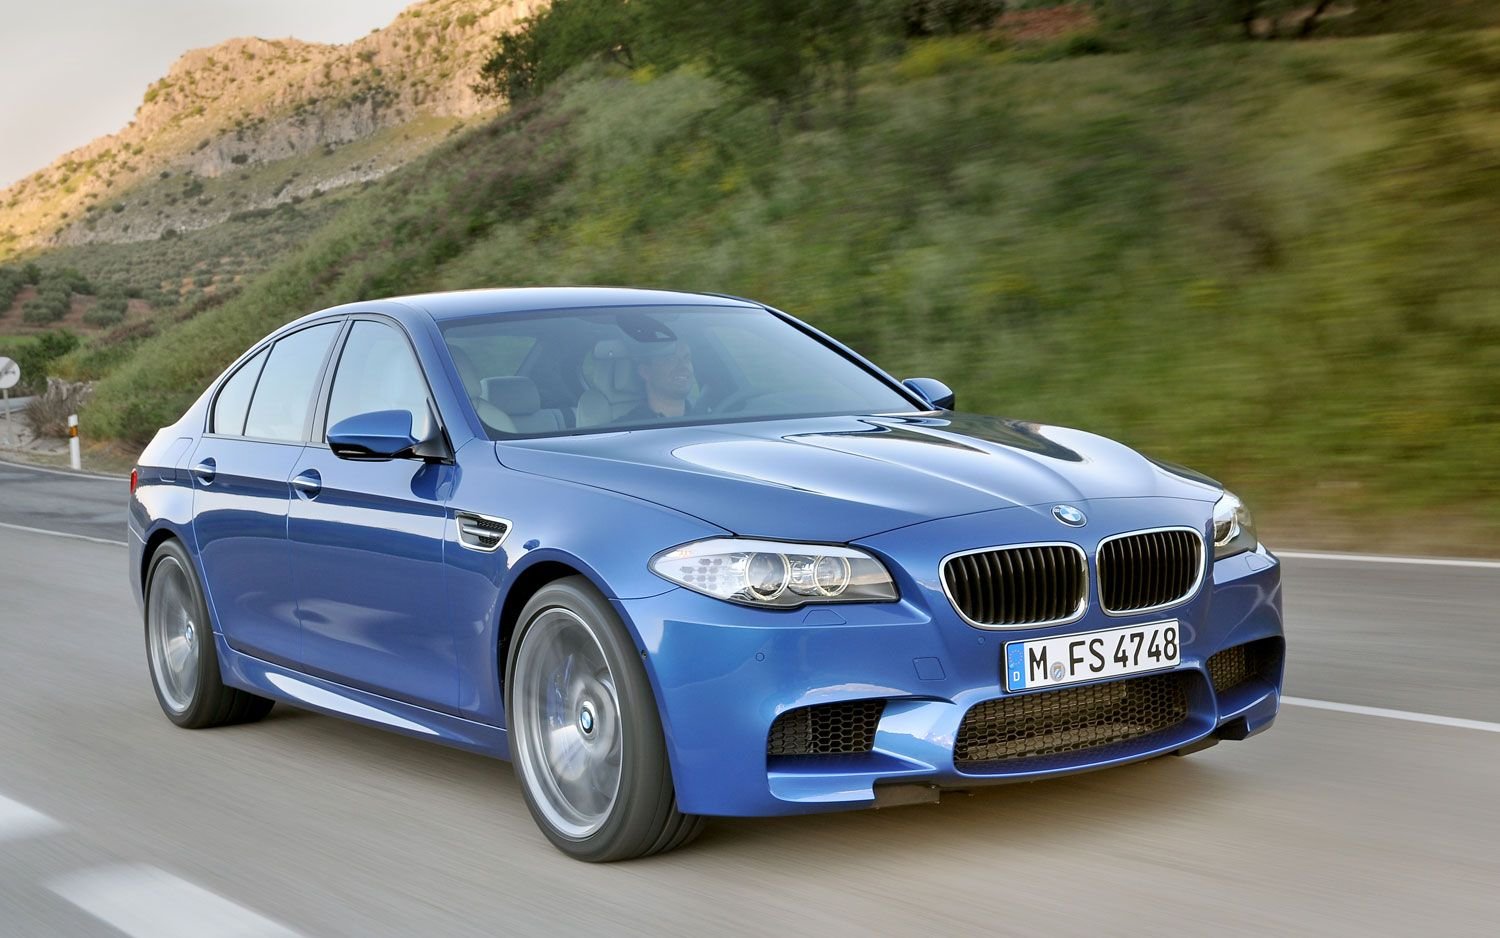 2012 Bmw M5 Front Right View1